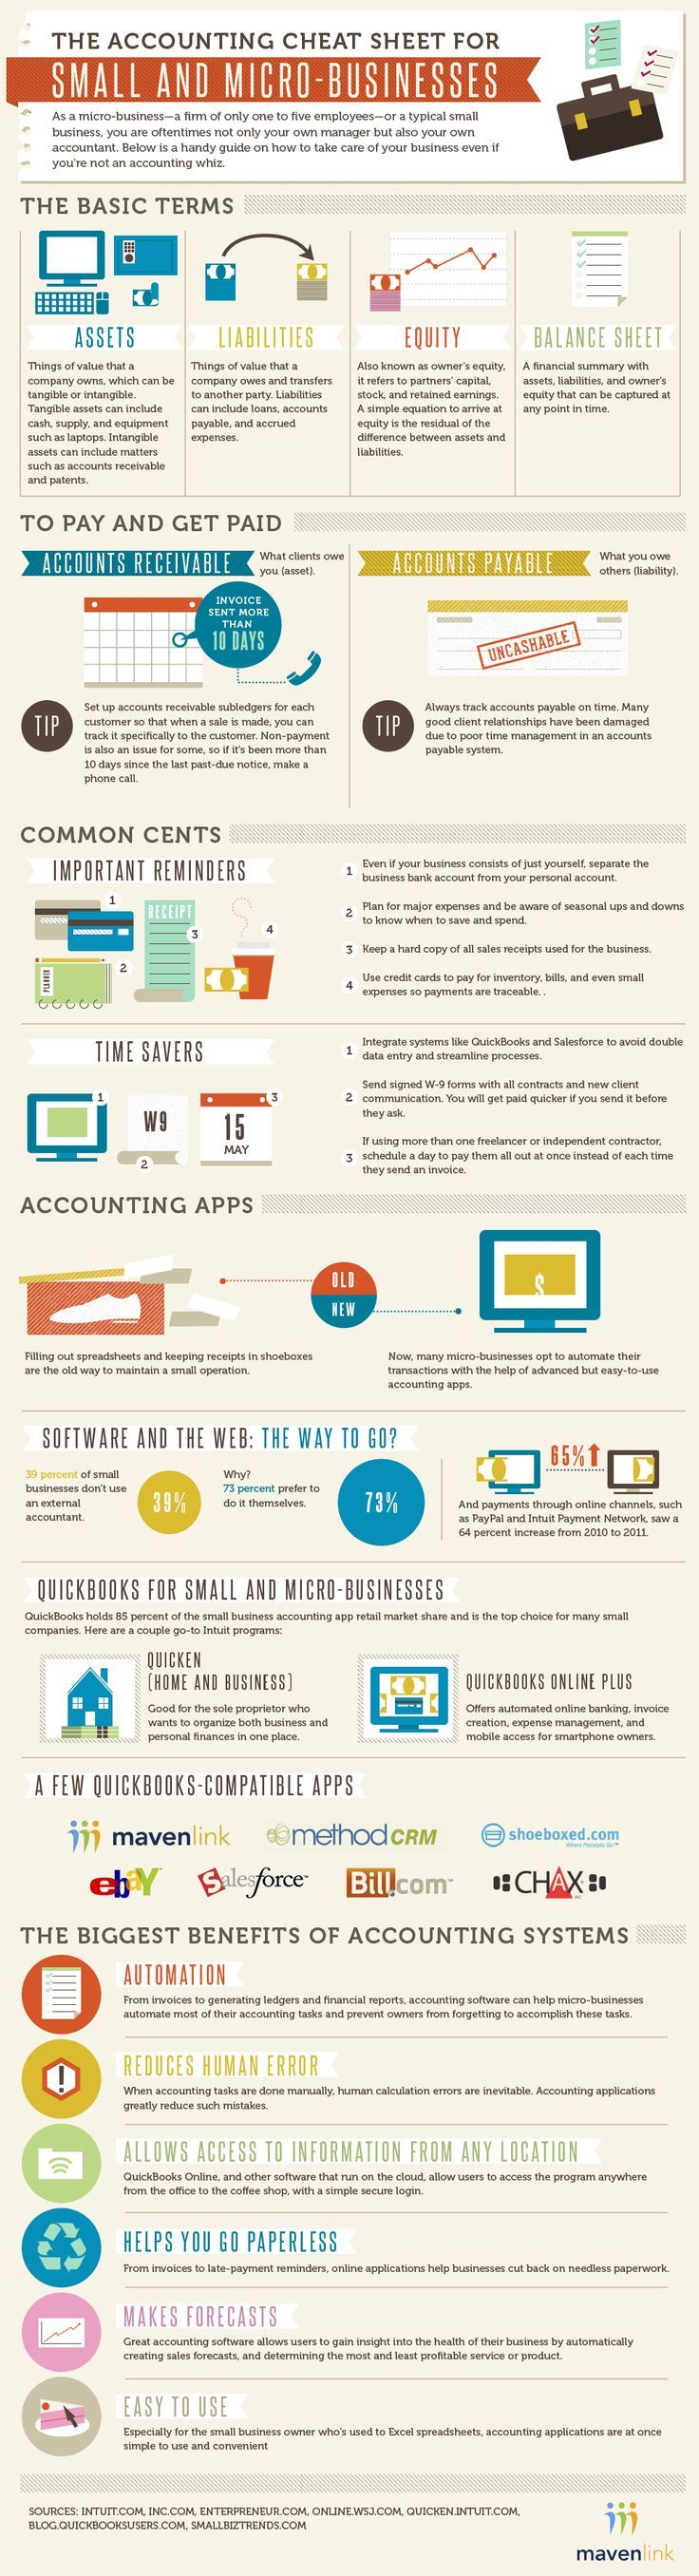 Handy overview of small business accounting principles for the person who doesnt want to, but has to, learn accounting